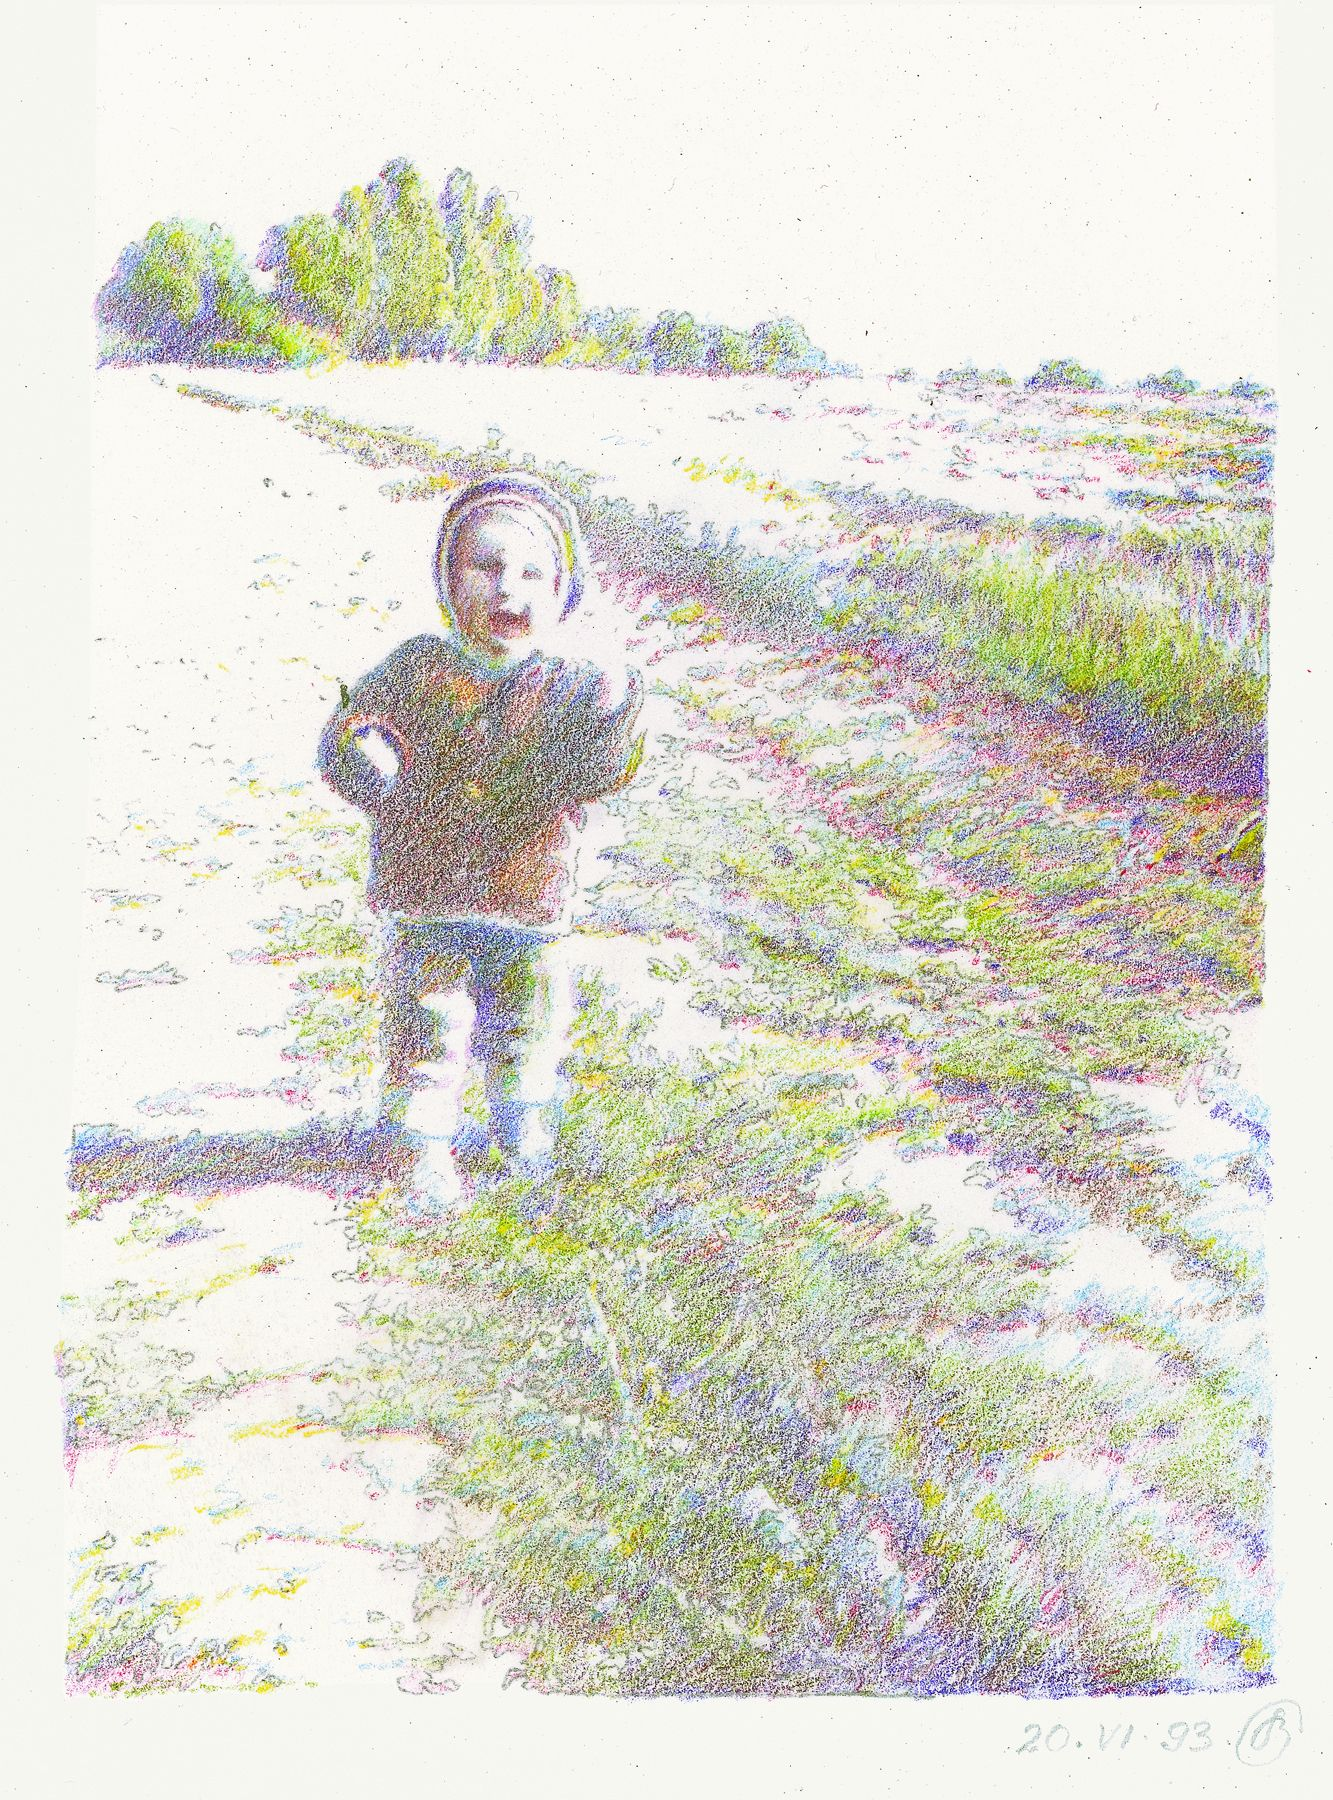 Oleg Vassiliev, Small Child, 1993, graphite and colored pencil on paper, 15 x 10 1/8 inches